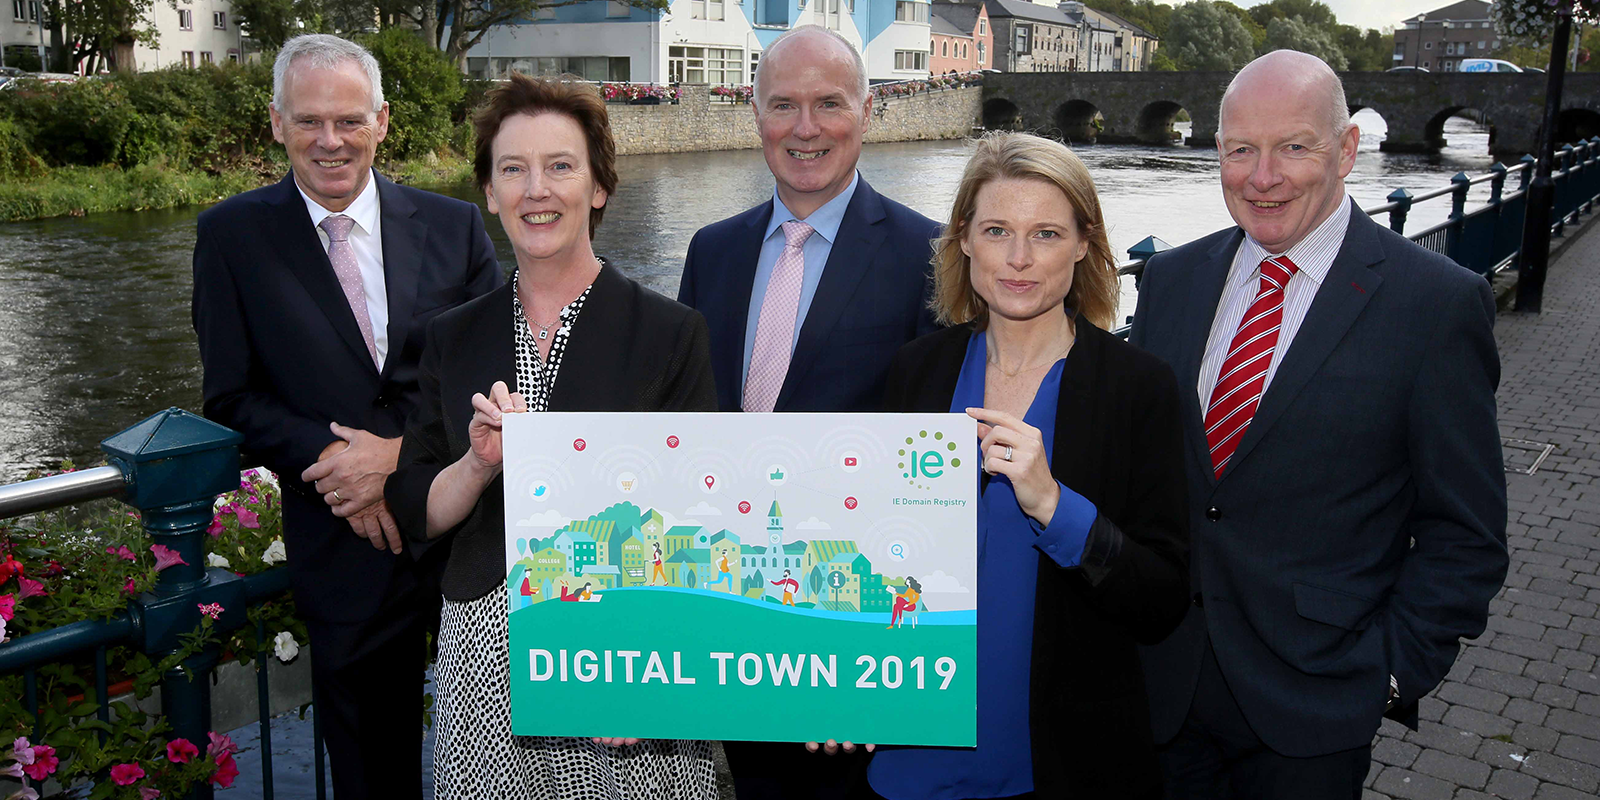 Sligo has been chosen as Ireland's Digital Town 2019 under the scheme run by the IE Domain Registry,.